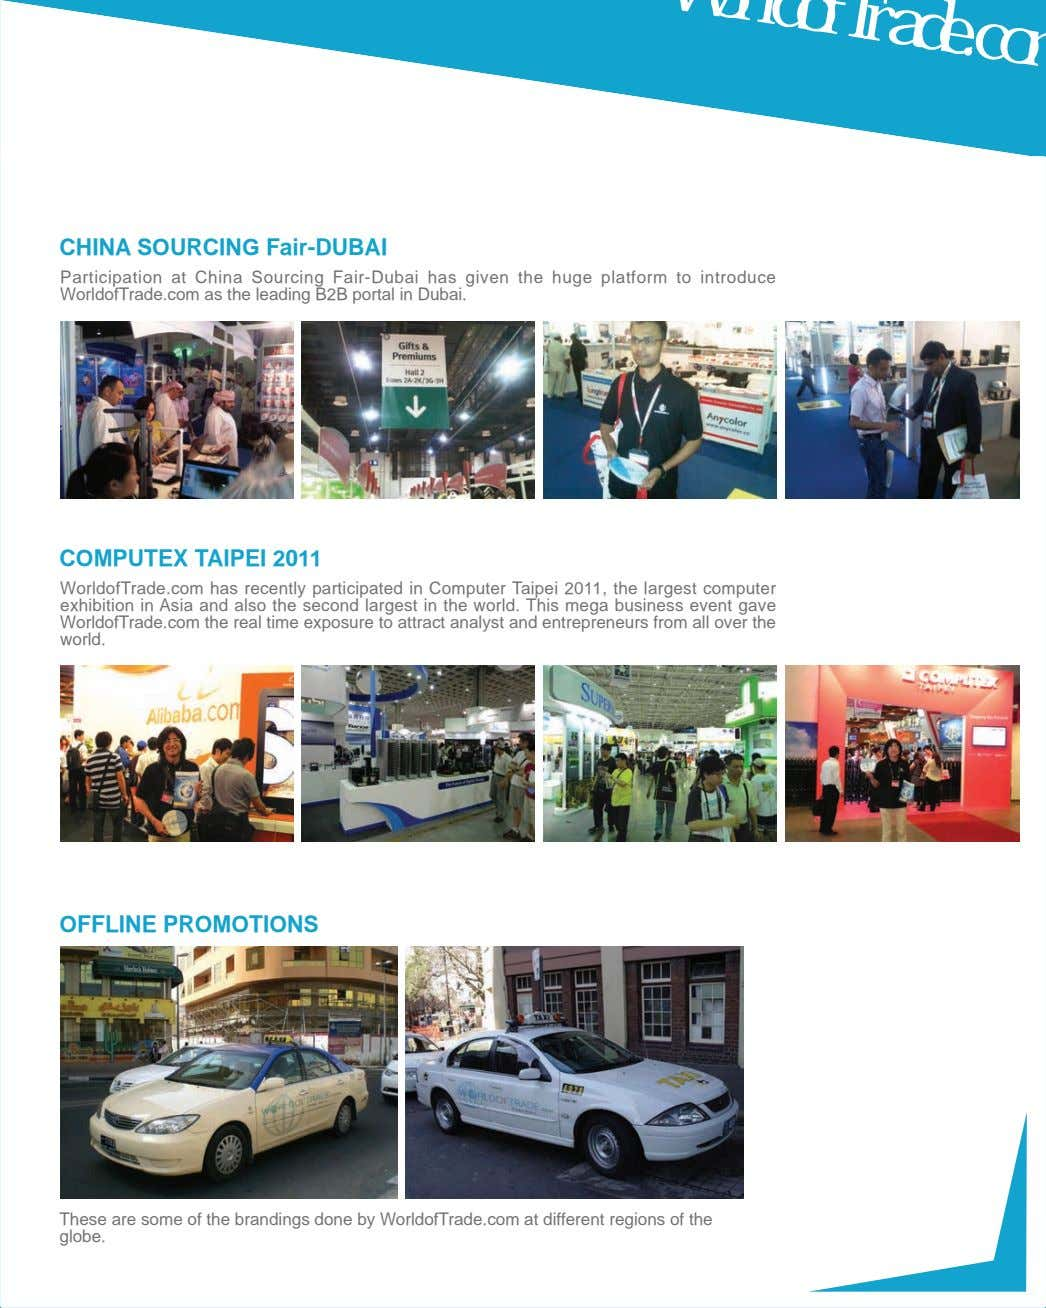 WorldofTrade.com has recently participated in Computer Taipei 2011, the largest computer exhibition in Asia and also